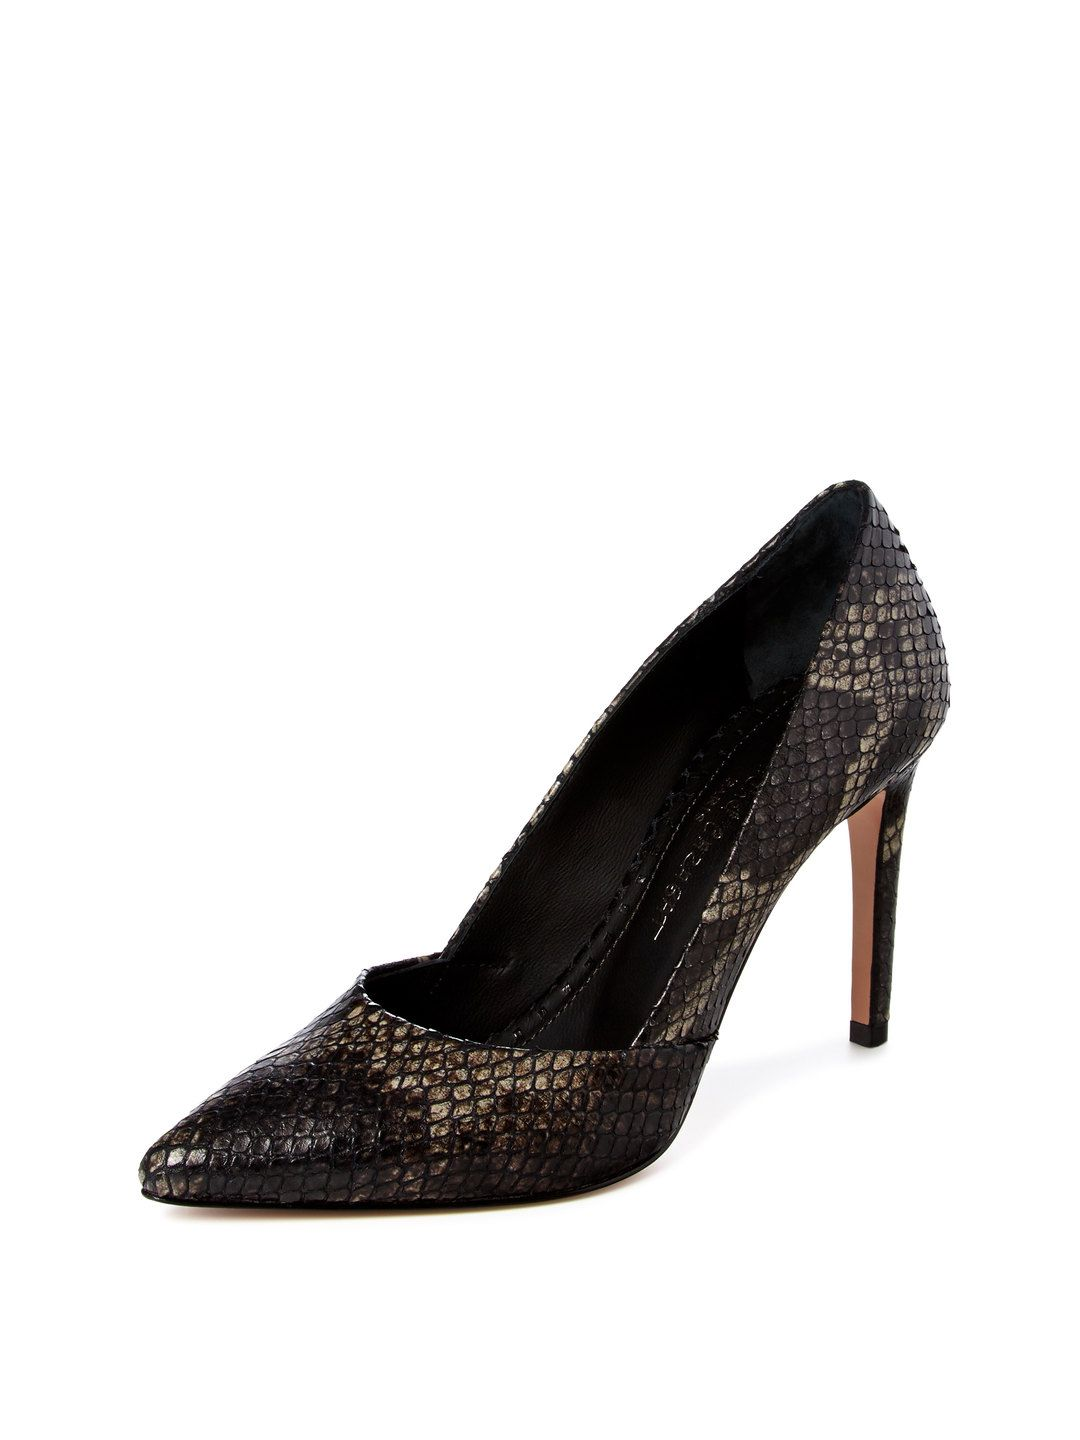 Jean-Michel Cazabat Pointed-Toe Glitter Pumps factory outlet collections online discount footlocker pictures cheap sale high quality sale low price ask7koI